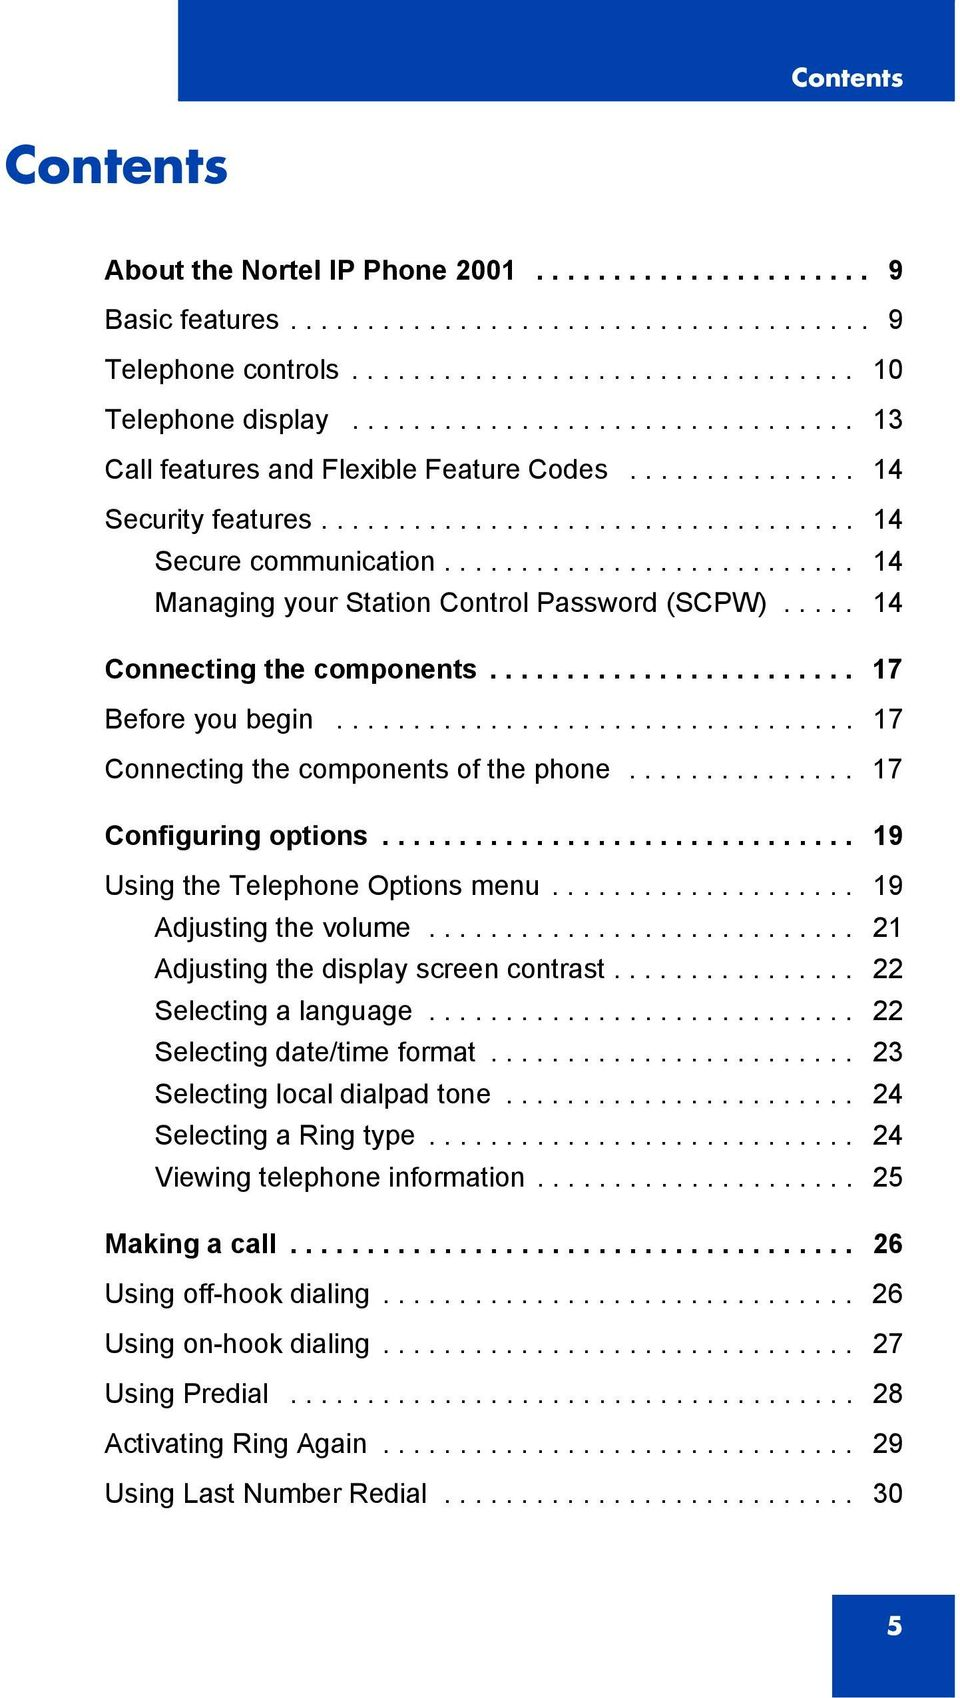 .......................... 14 Managing your Station Control Password (SCPW)..... 14 Connecting the components........................ 17 Before you begin.................................. 17 Connecting the components of the phone.